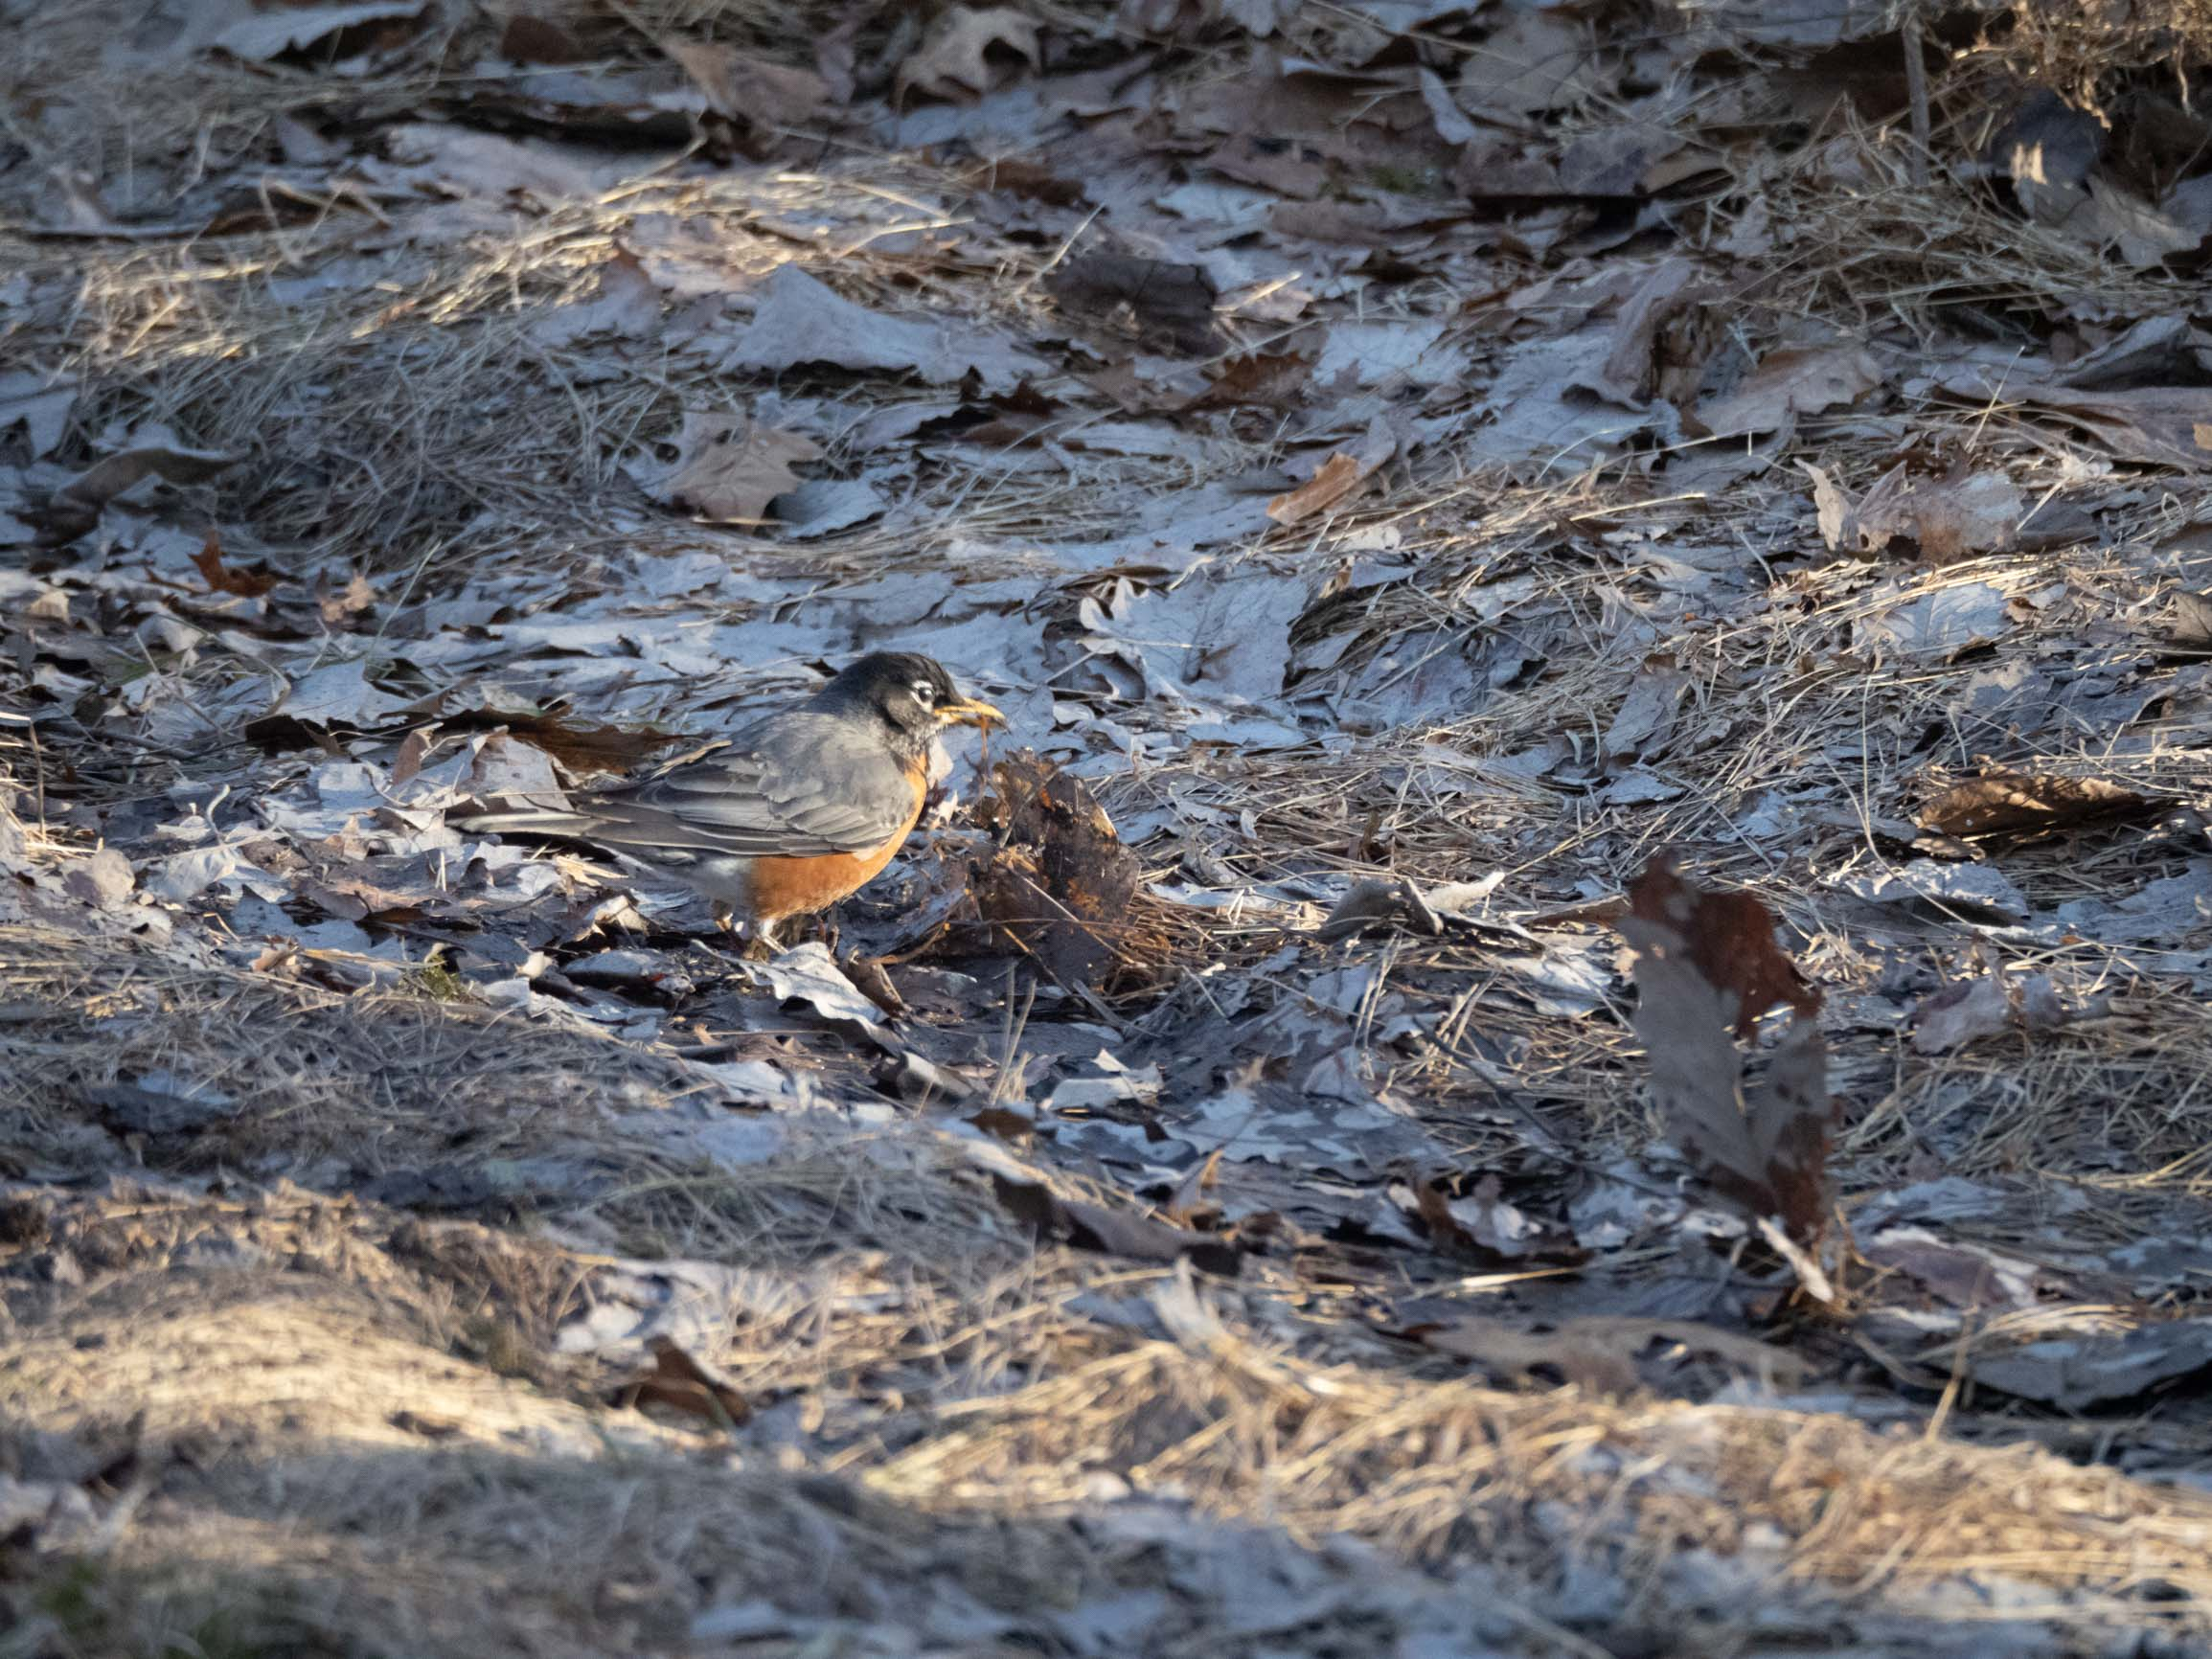 Robin digs for worms: a three photo sequence